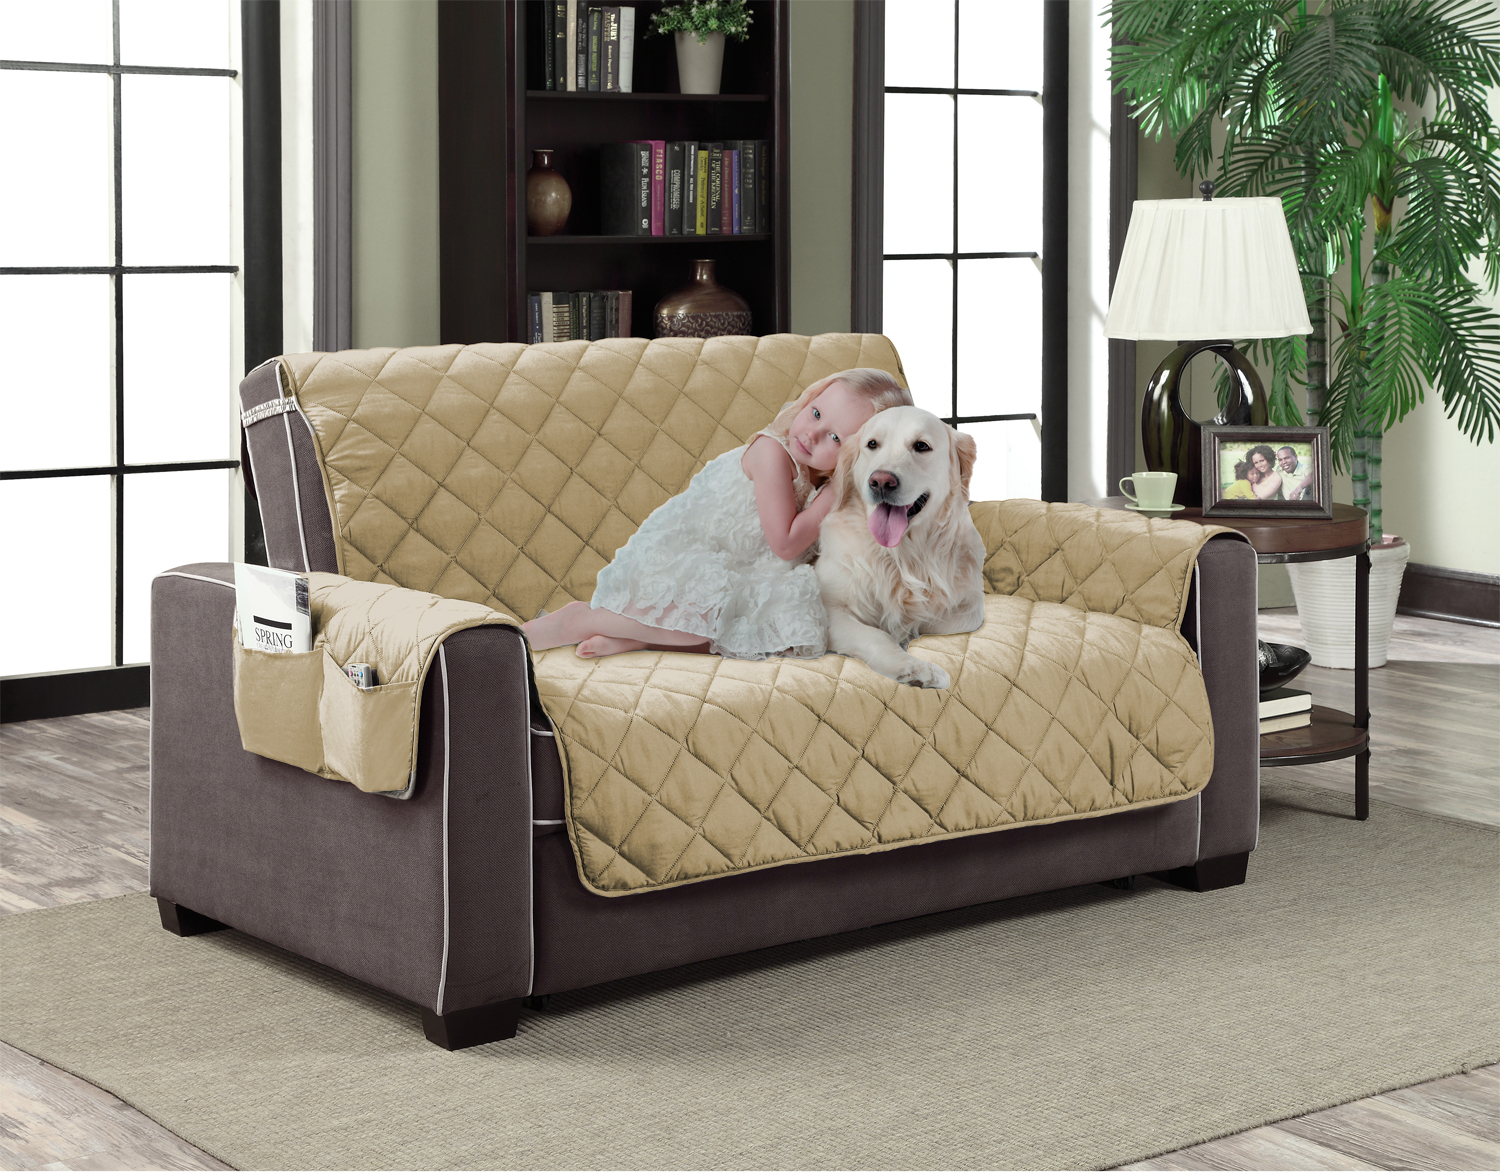 Home Dynamix Slipcovers: All Season Quilted Microfiber Pet Furniture Couch  Protector Cover   Beige